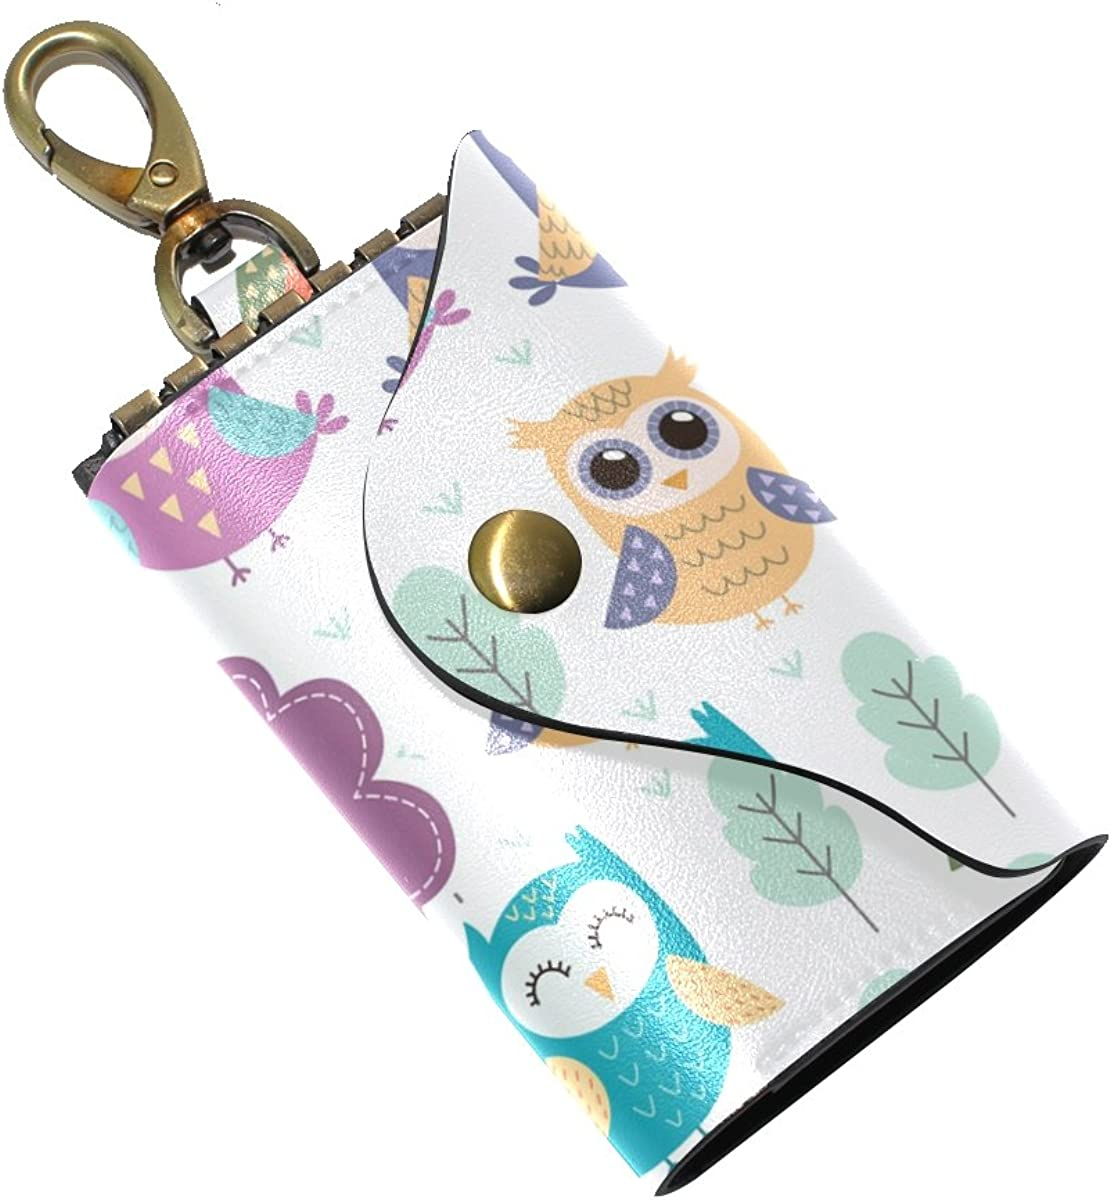 KEAKIA Owls Pattern Leather Key Case Wallets Tri-fold Key Holder Keychains with 6 Hooks 2 Slot Snap Closure for Men Women